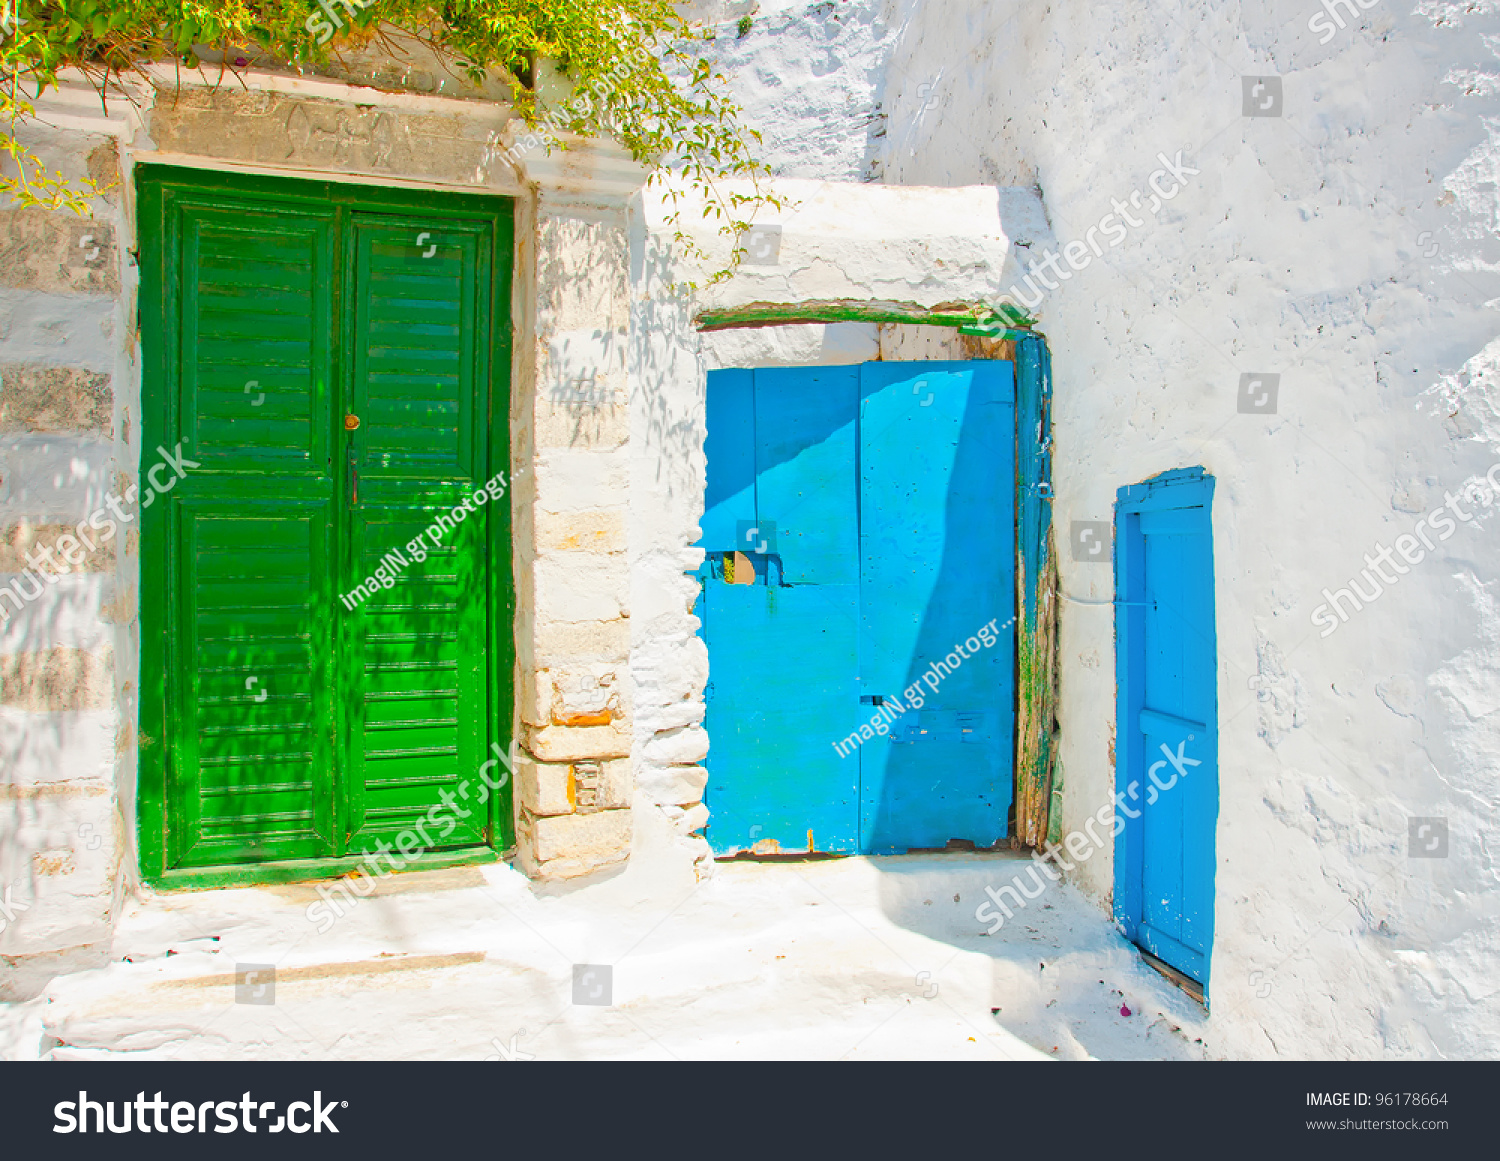 Old beautiful traditional house in chora the capital of amorgos island - Beautiful Old Traditional House With Wooden Green And Blue Colored Doors In Chora The Capital Of